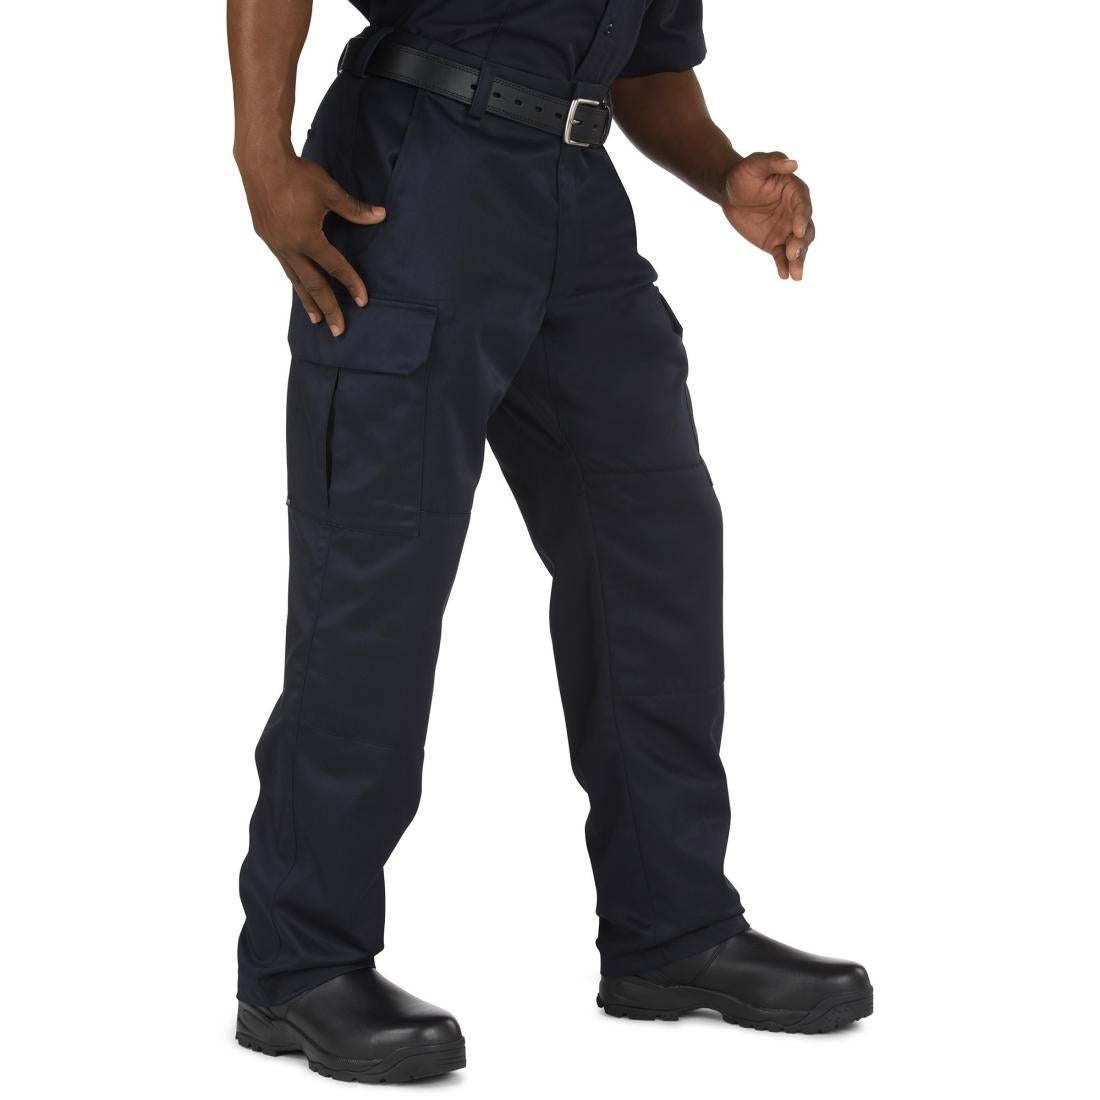 5.11 Tactical 74399 Men's Company Cargo Pant Fire Navy